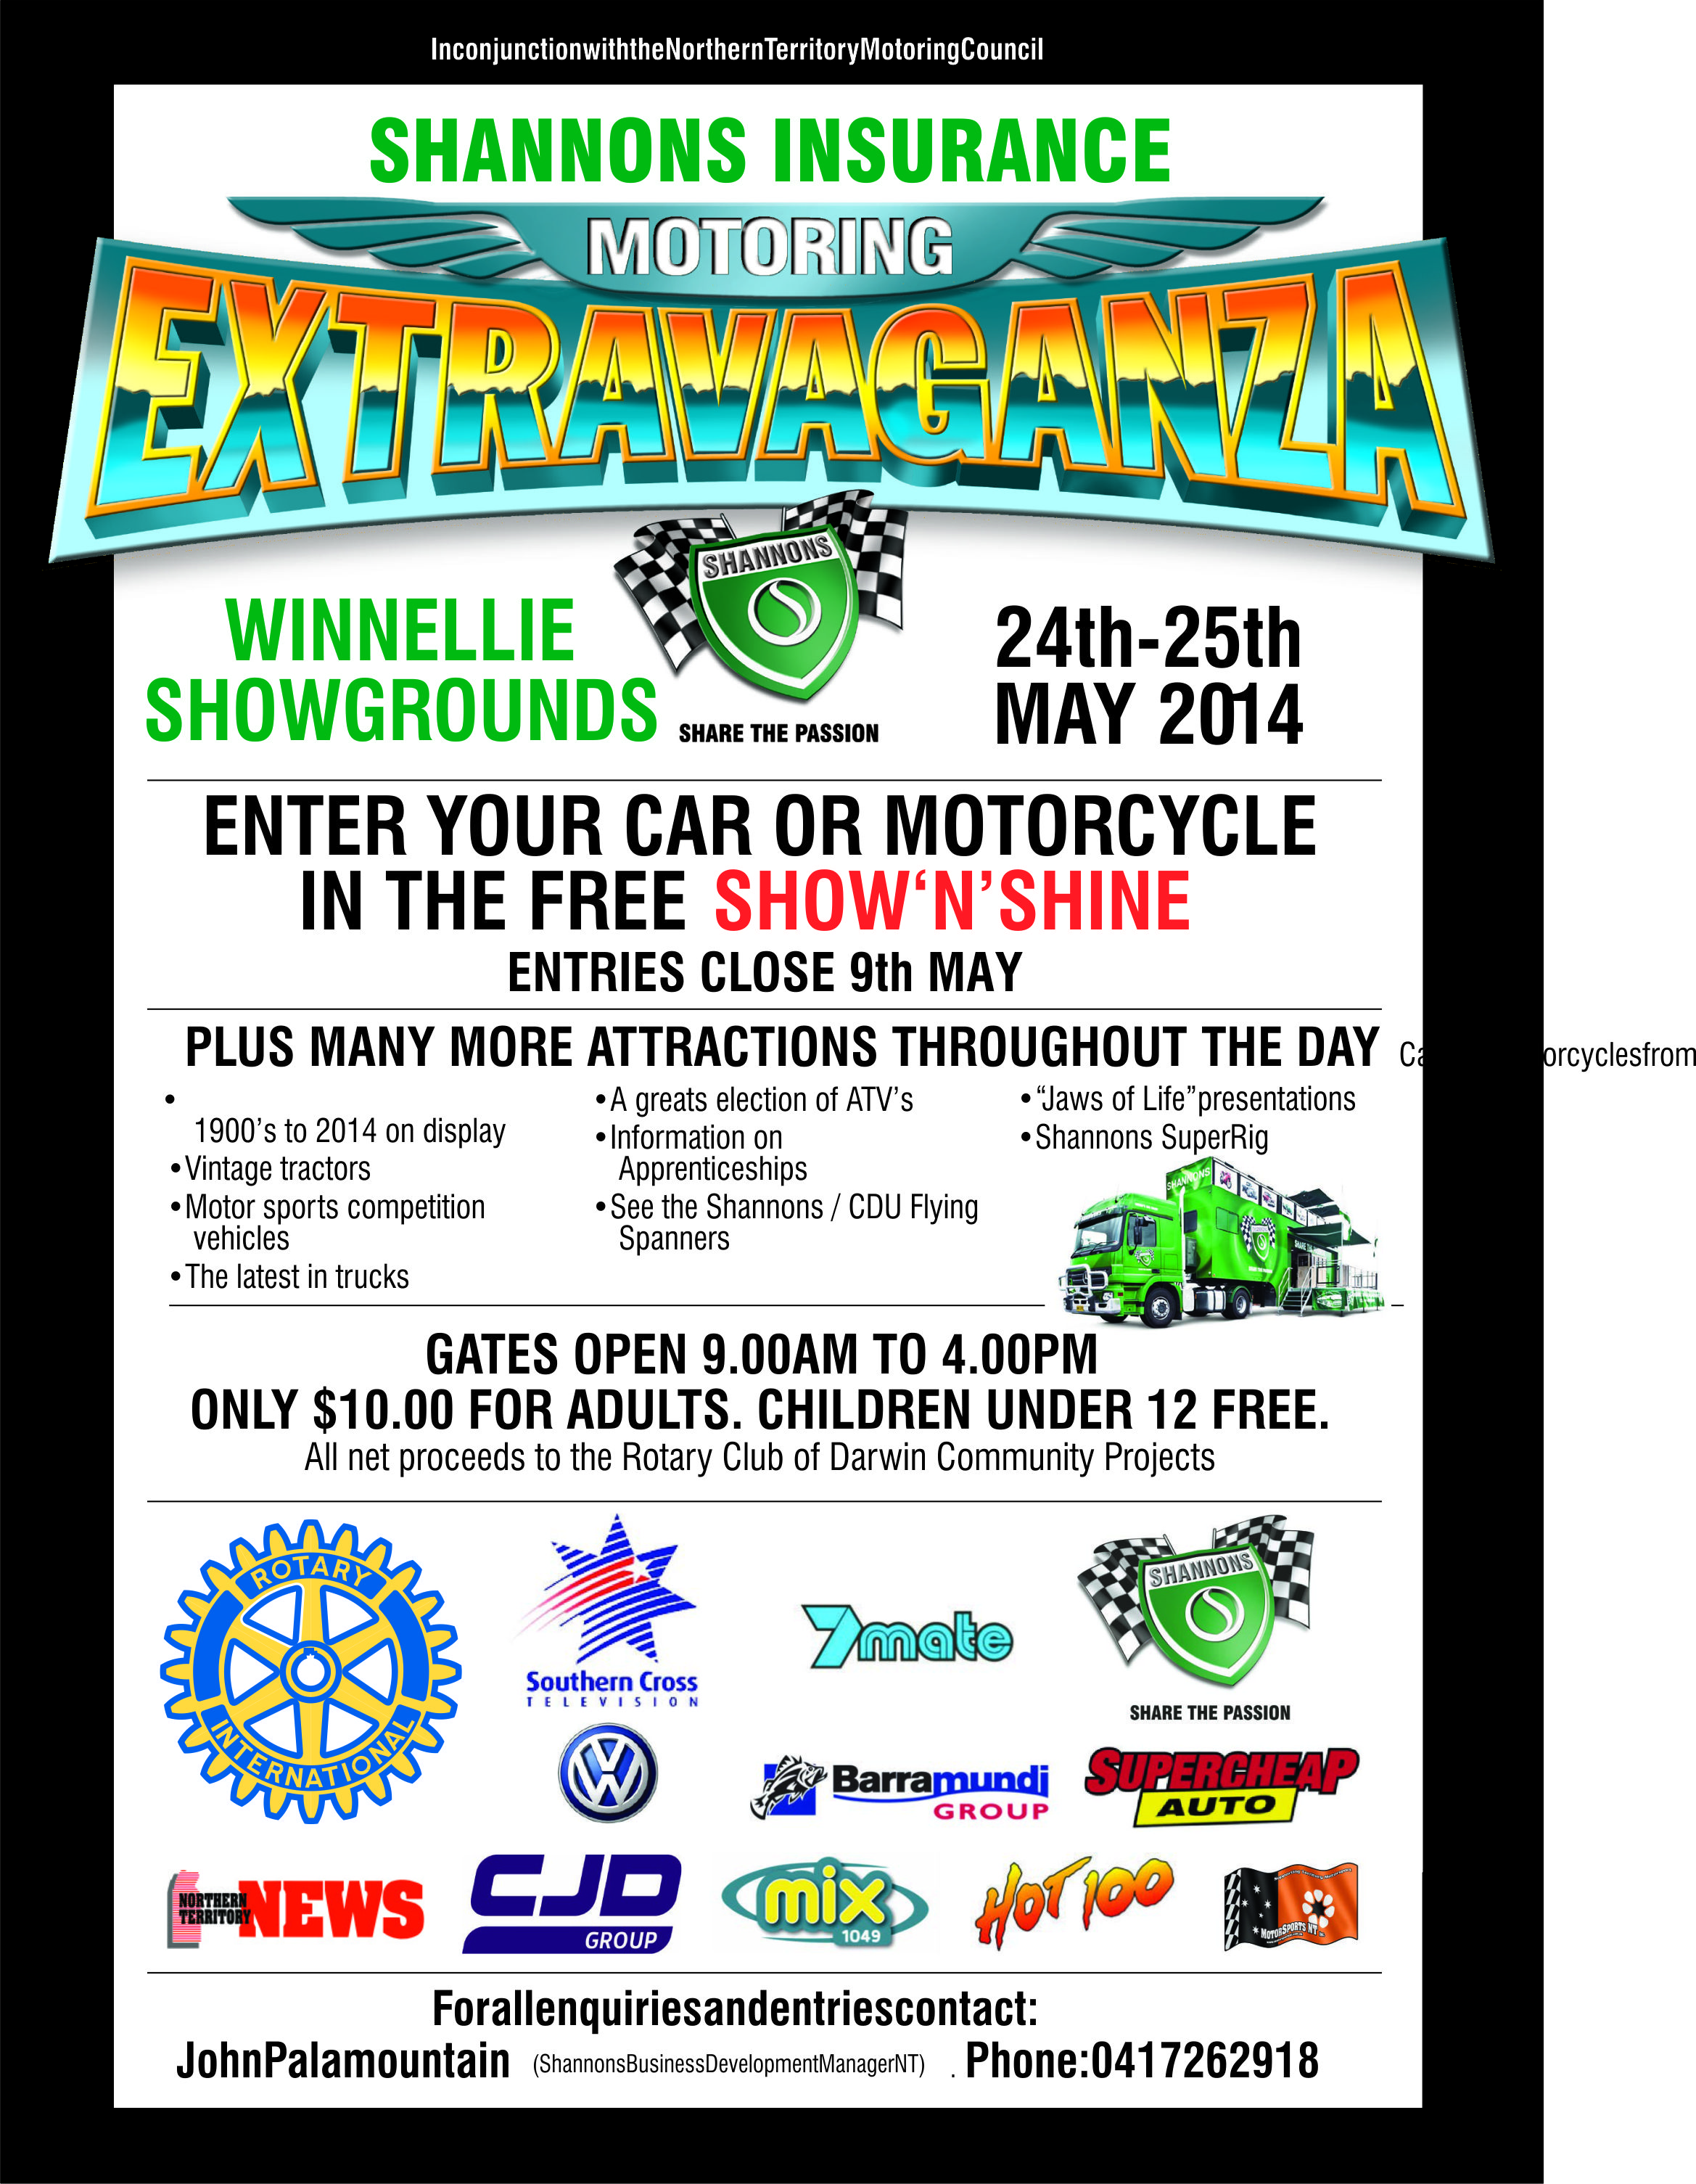 Motor Extravagana poster with fixed kerning